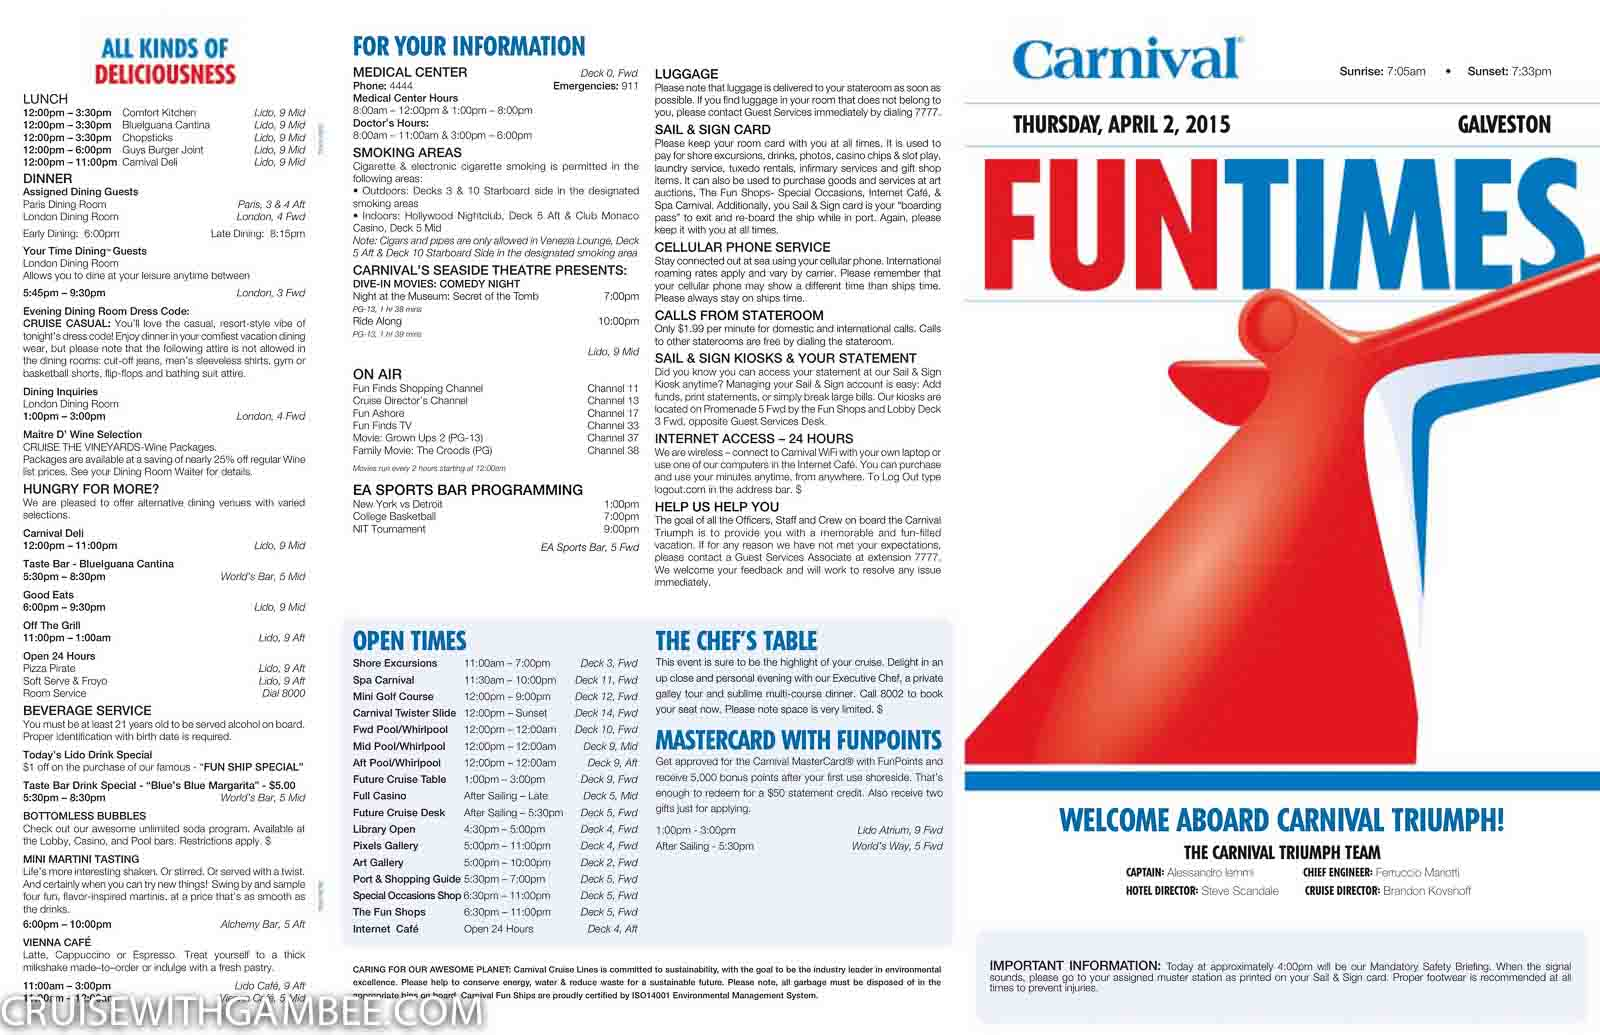 Carnival Triumph Funtimes Daily Itinerary Cruise With Gambee